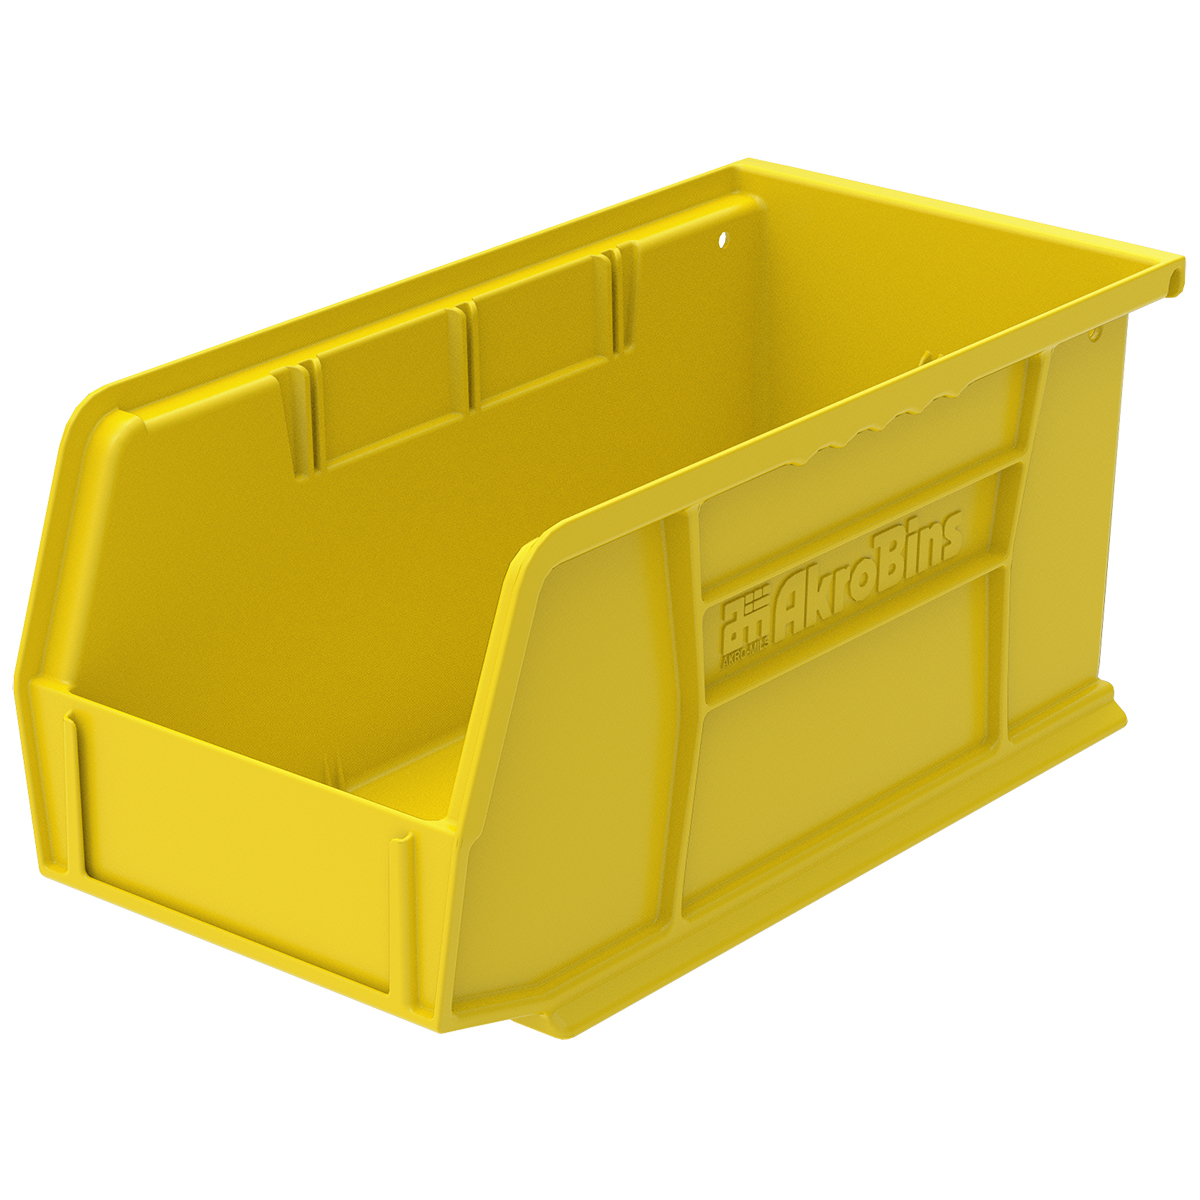 AkroBin 10-7/8 x 5-1/2 x 5, Yellow (30230YELLO).  This item sold in carton quantities of 12.